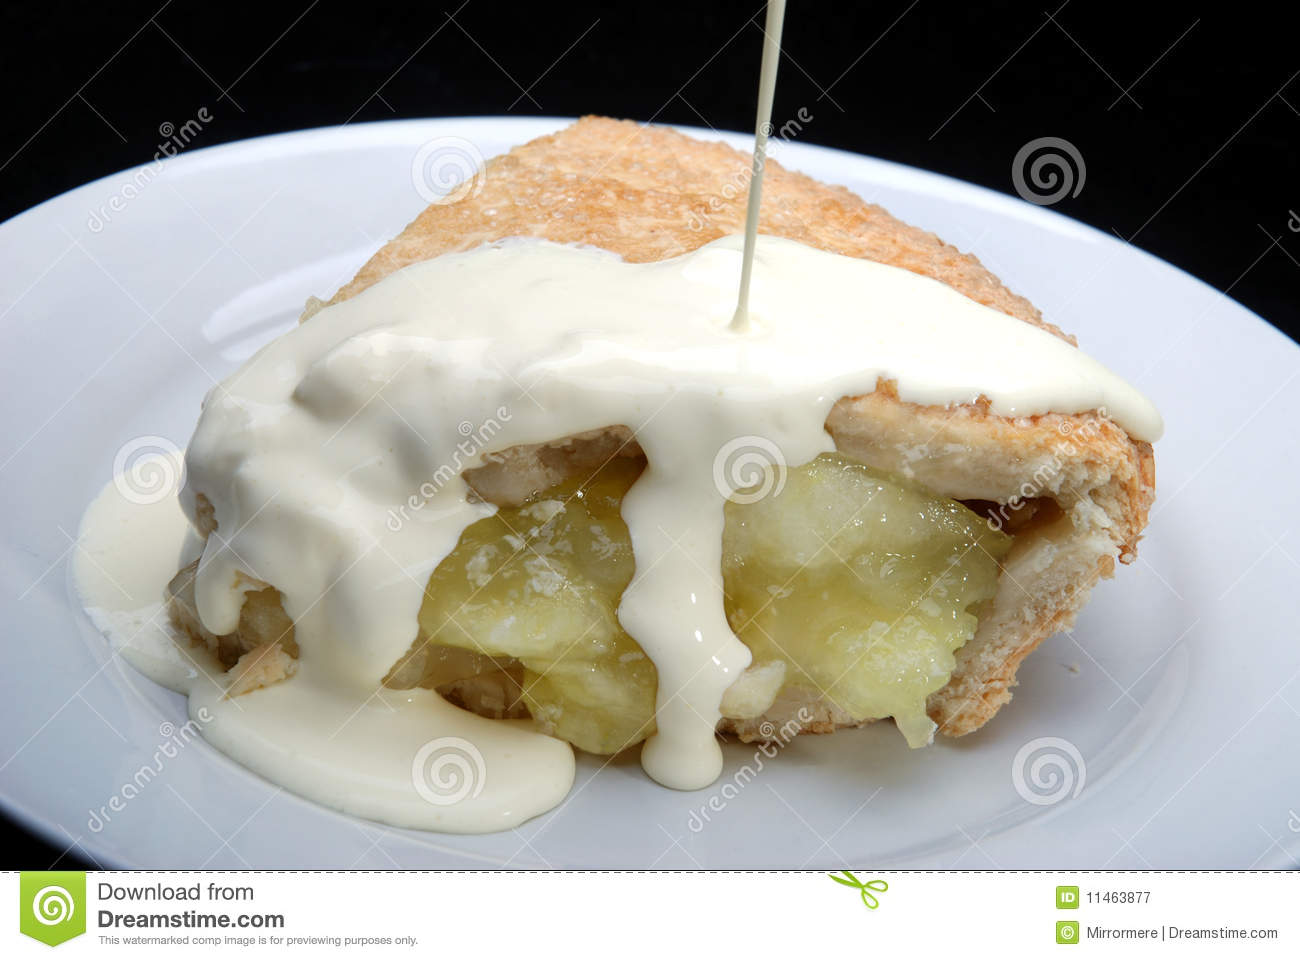 Apple Cup Trophy >> Apple Pie With Cream Royalty Free Stock Photography - Image: 11463877